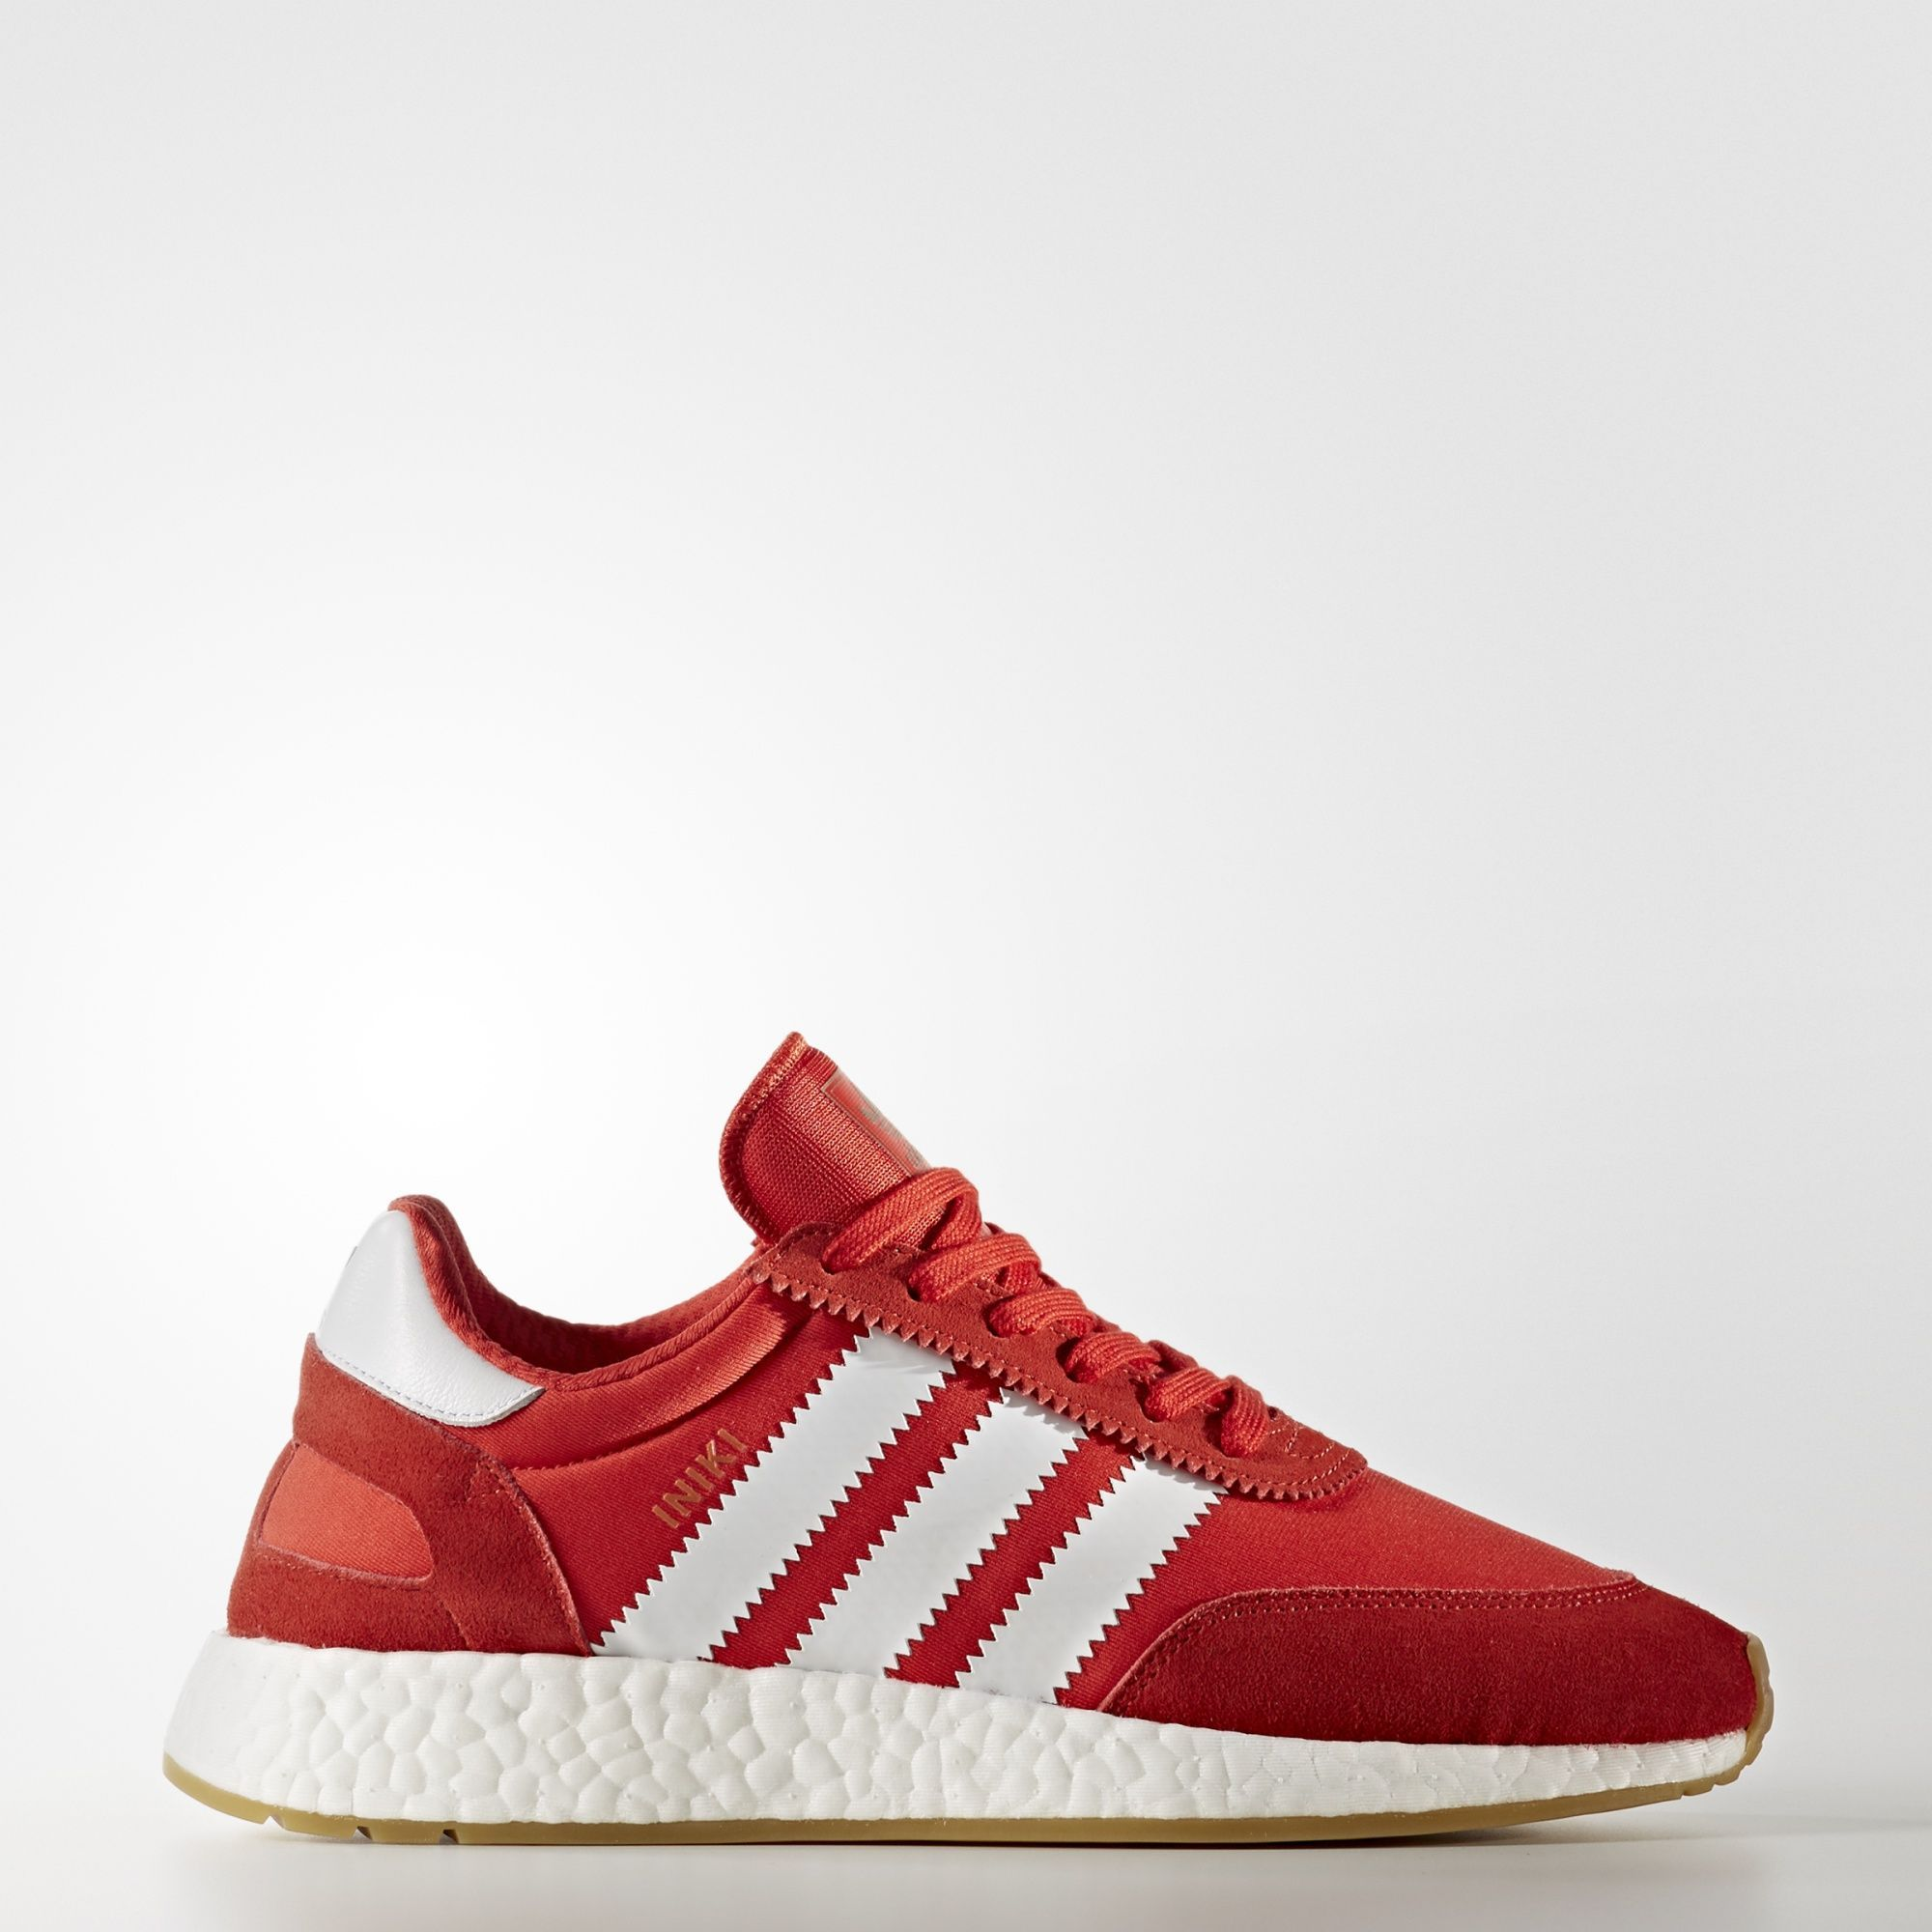 adidas - Iniki Runner Shoes